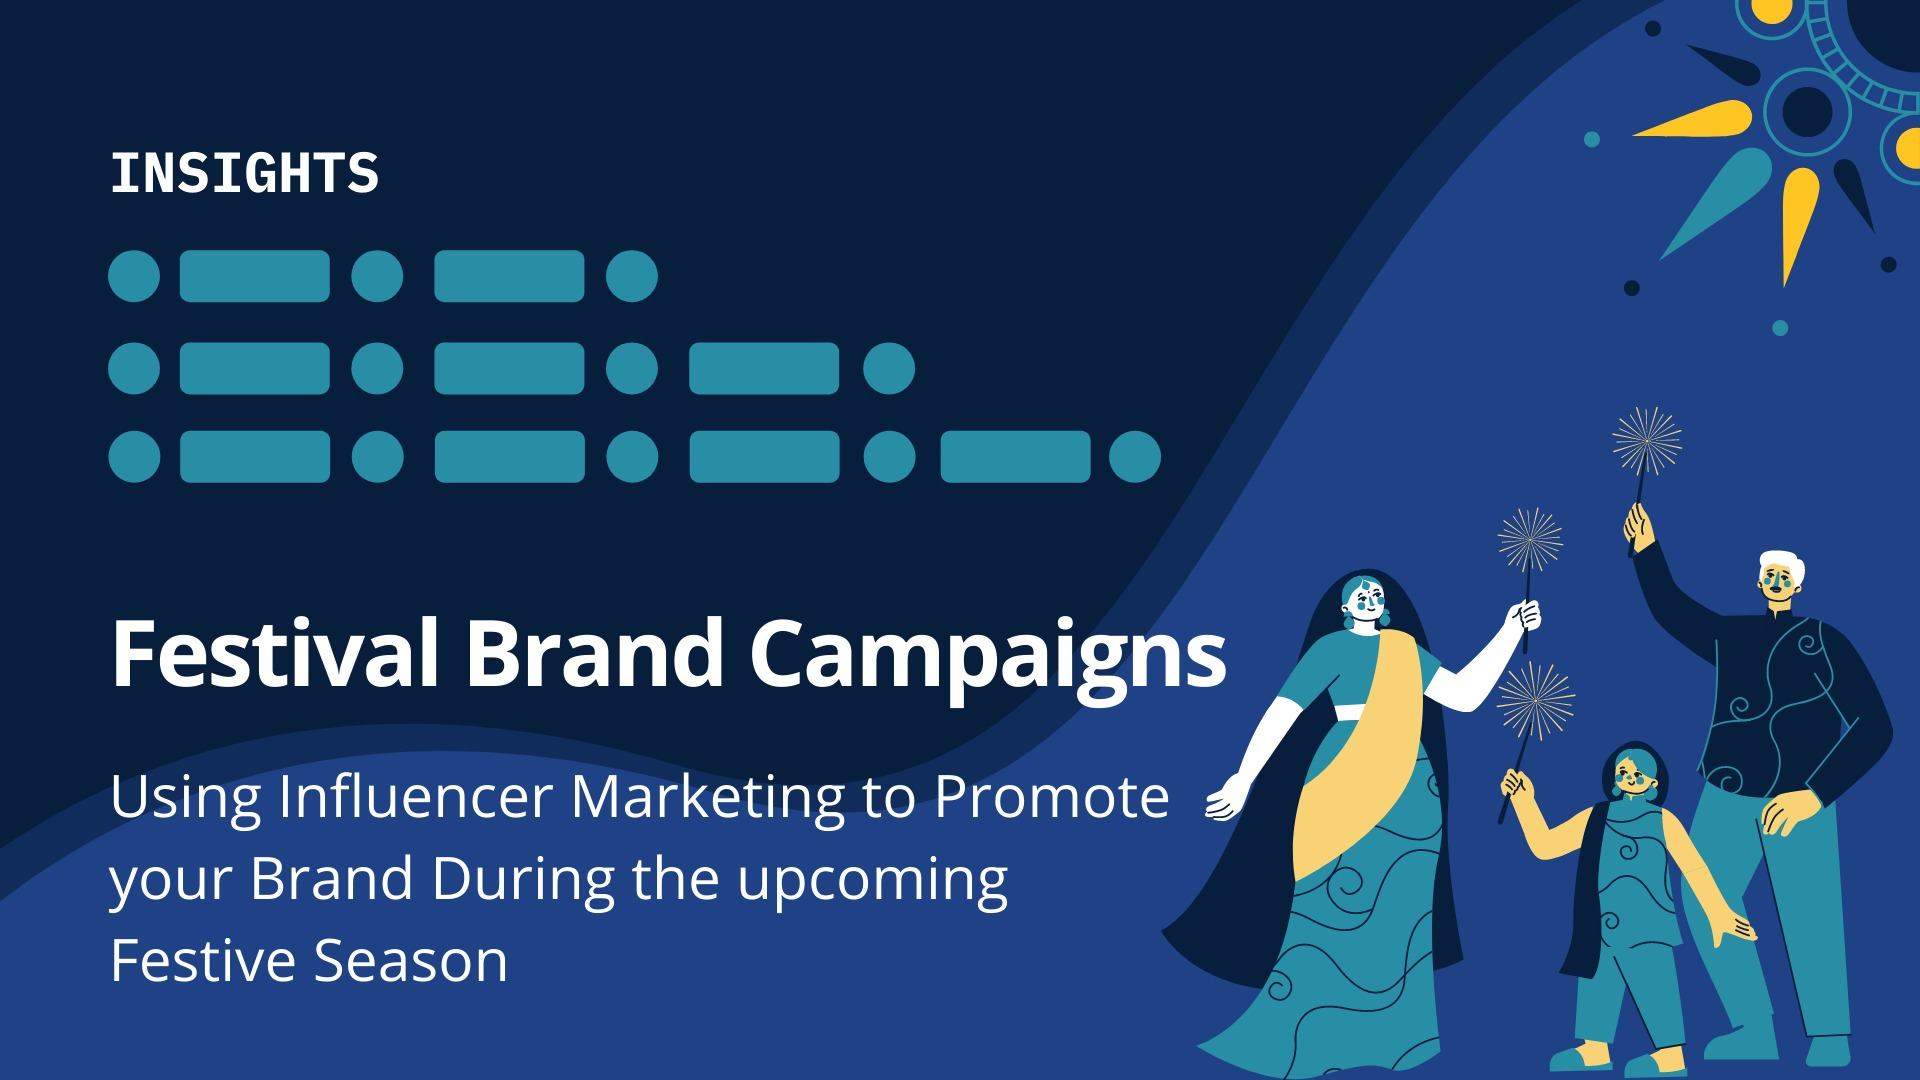 Festival Brand Campaigns: Using Influencer Marketing to Promote your Brand During the upcoming Festive Season - blog by Winkl (An influencer marketing platform)